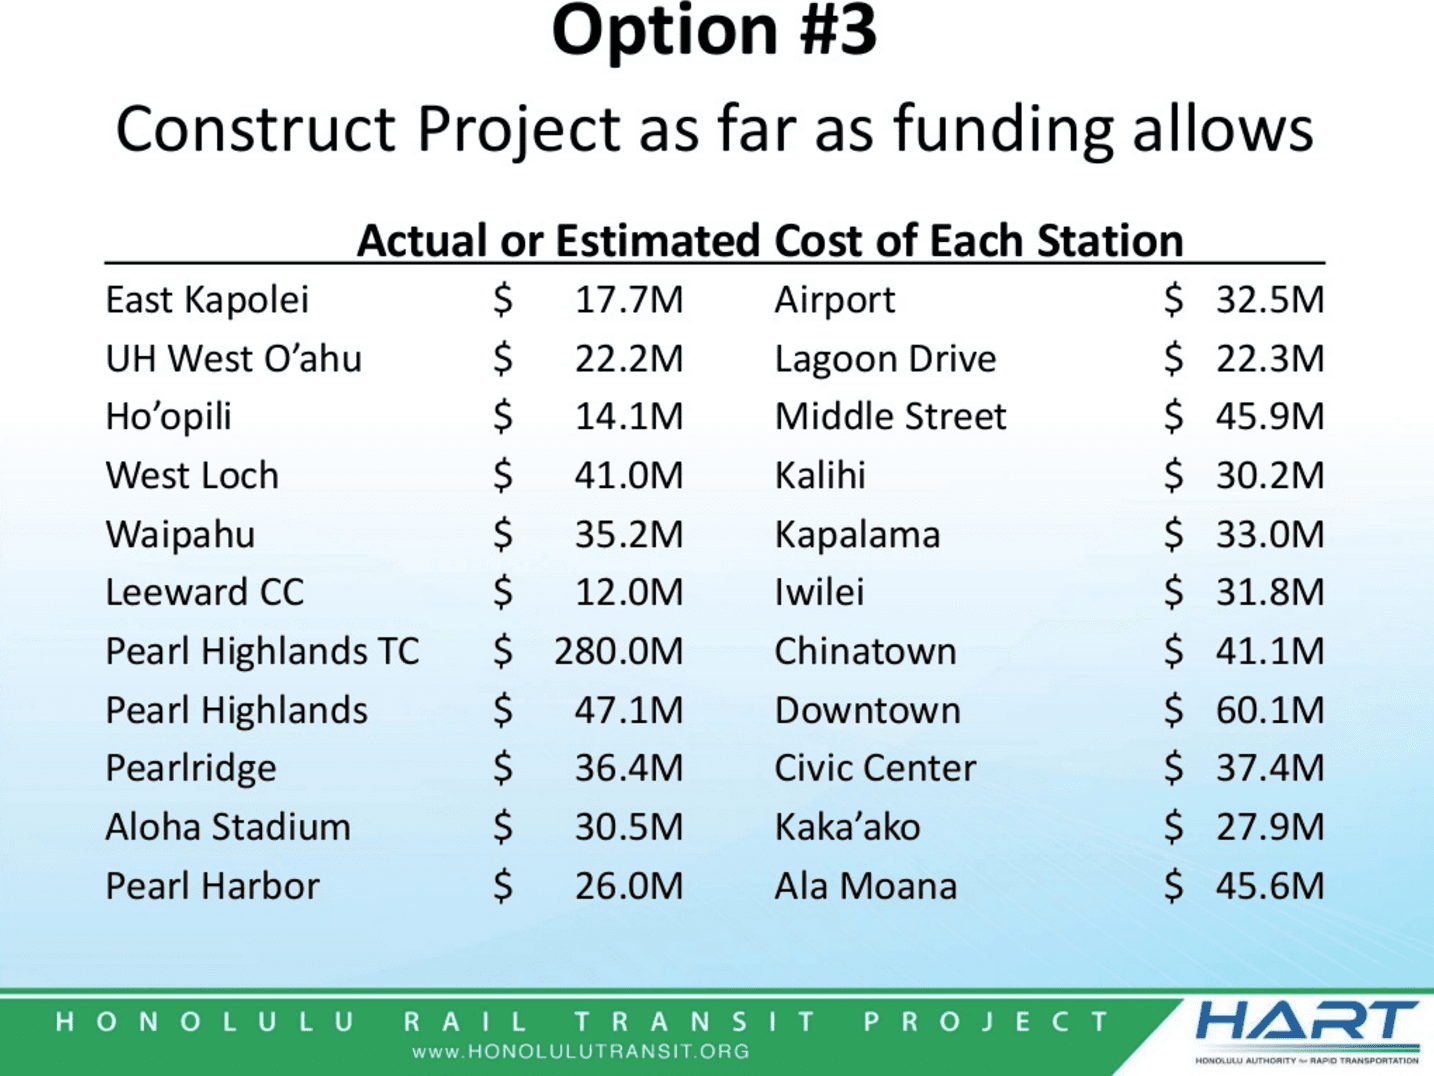 Hart Cost Estimate For Each Rail Station As Of June 8  2016